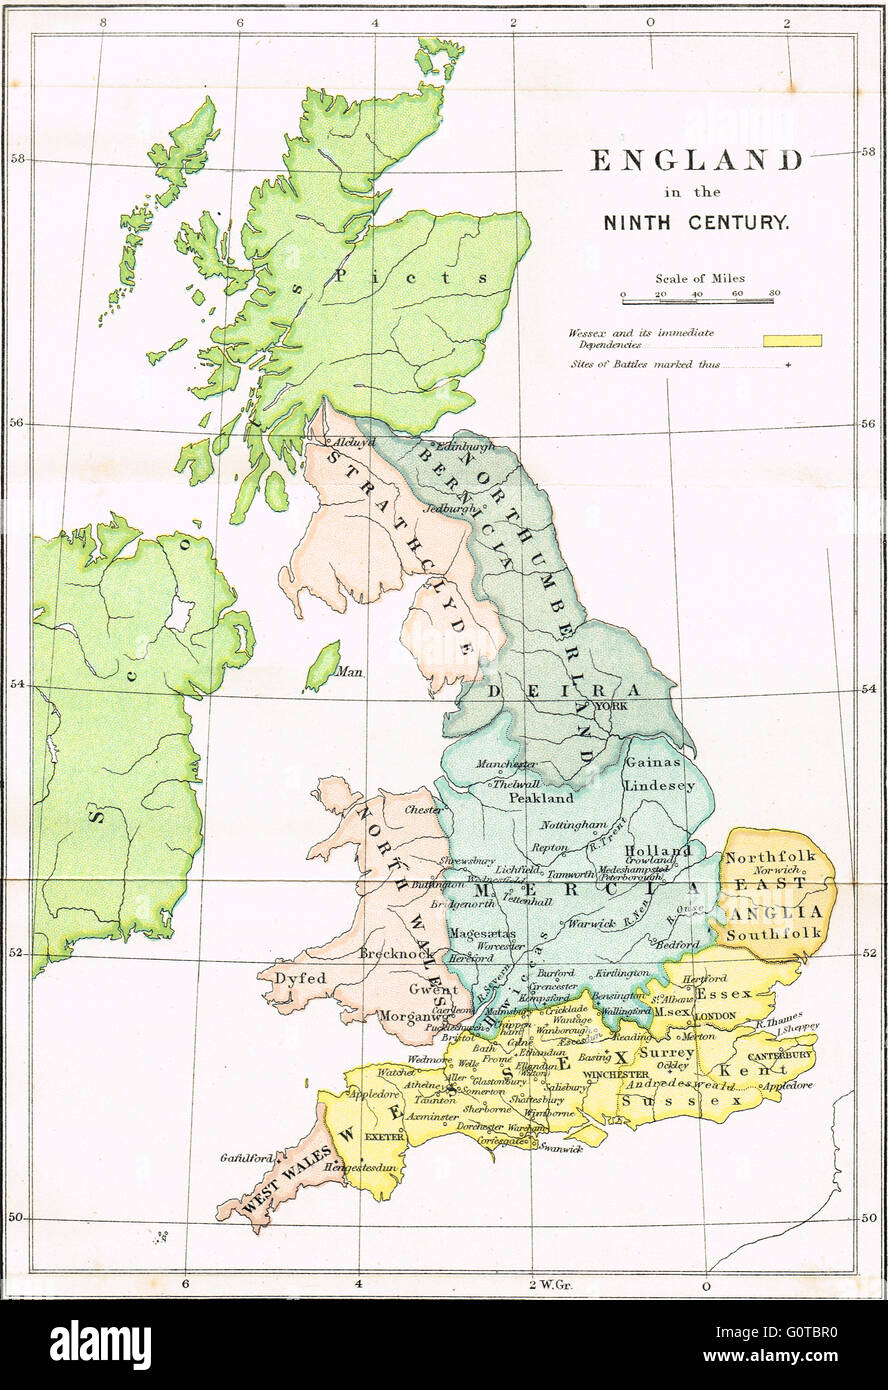 Anglo Saxon Map Of England.Map Of England In The Ninth Century Showing The Anglo Saxon Kingdoms